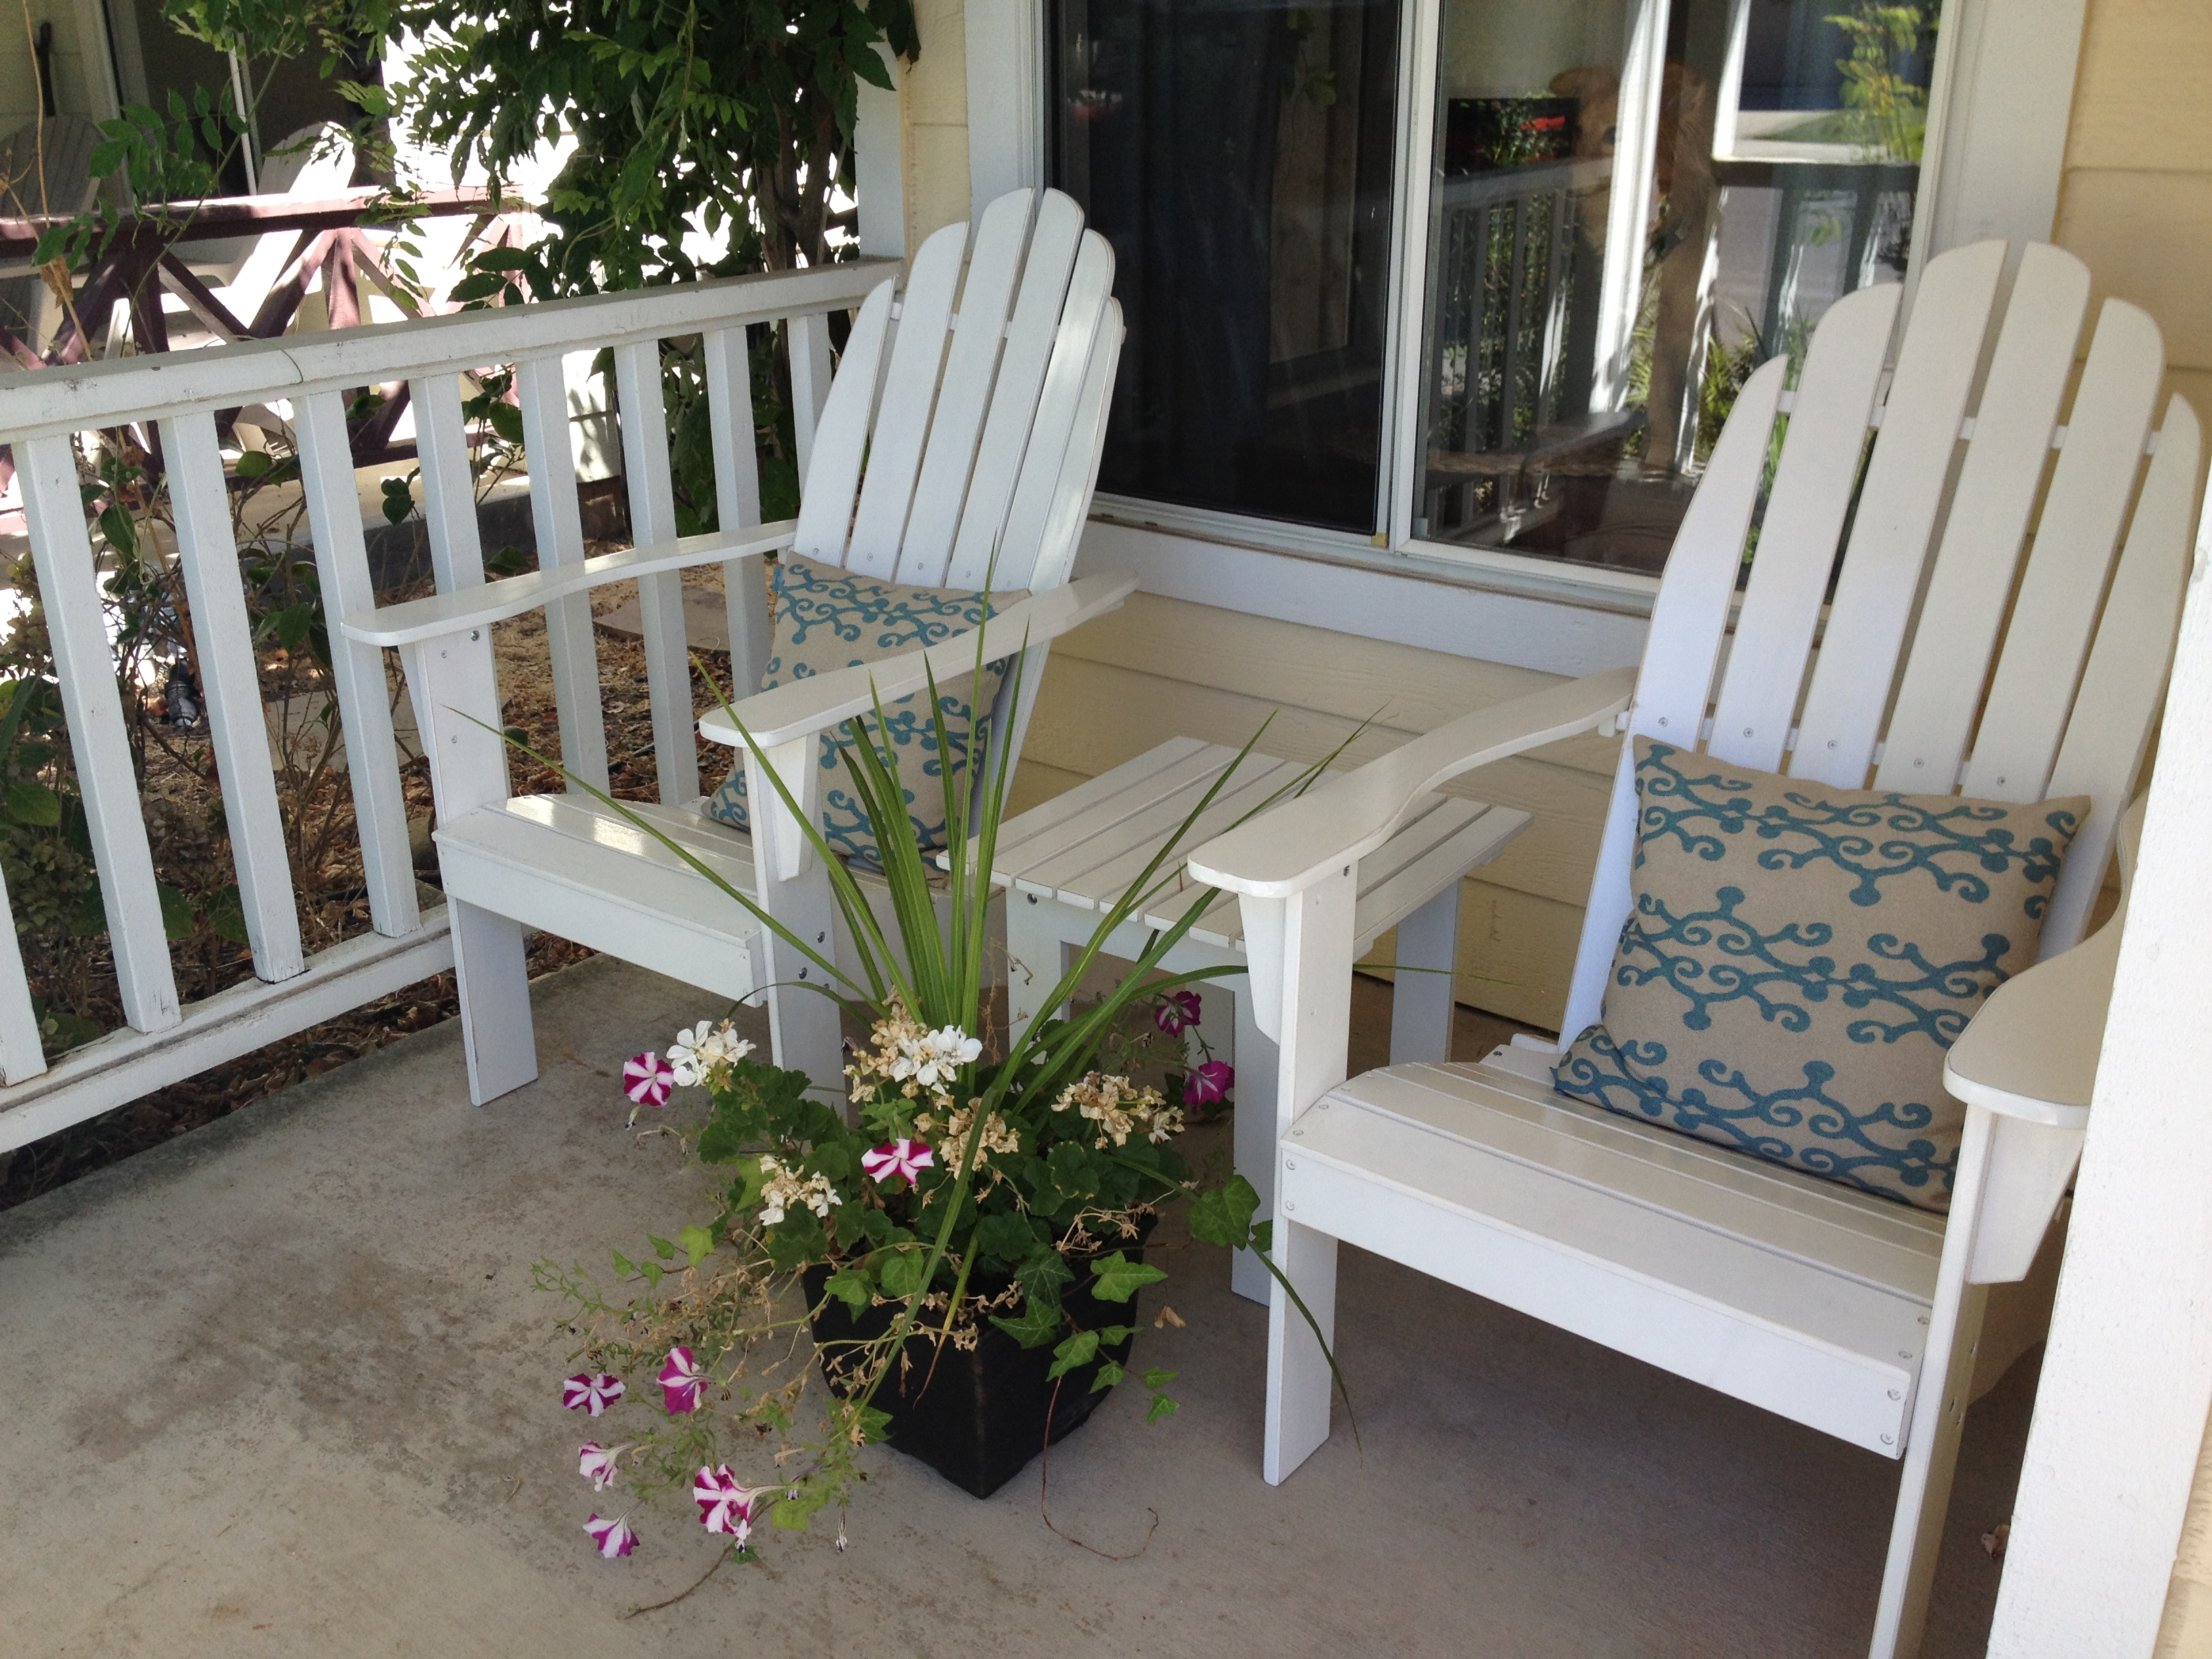 This year my wife bought some Adirondack chairs for our front porch…